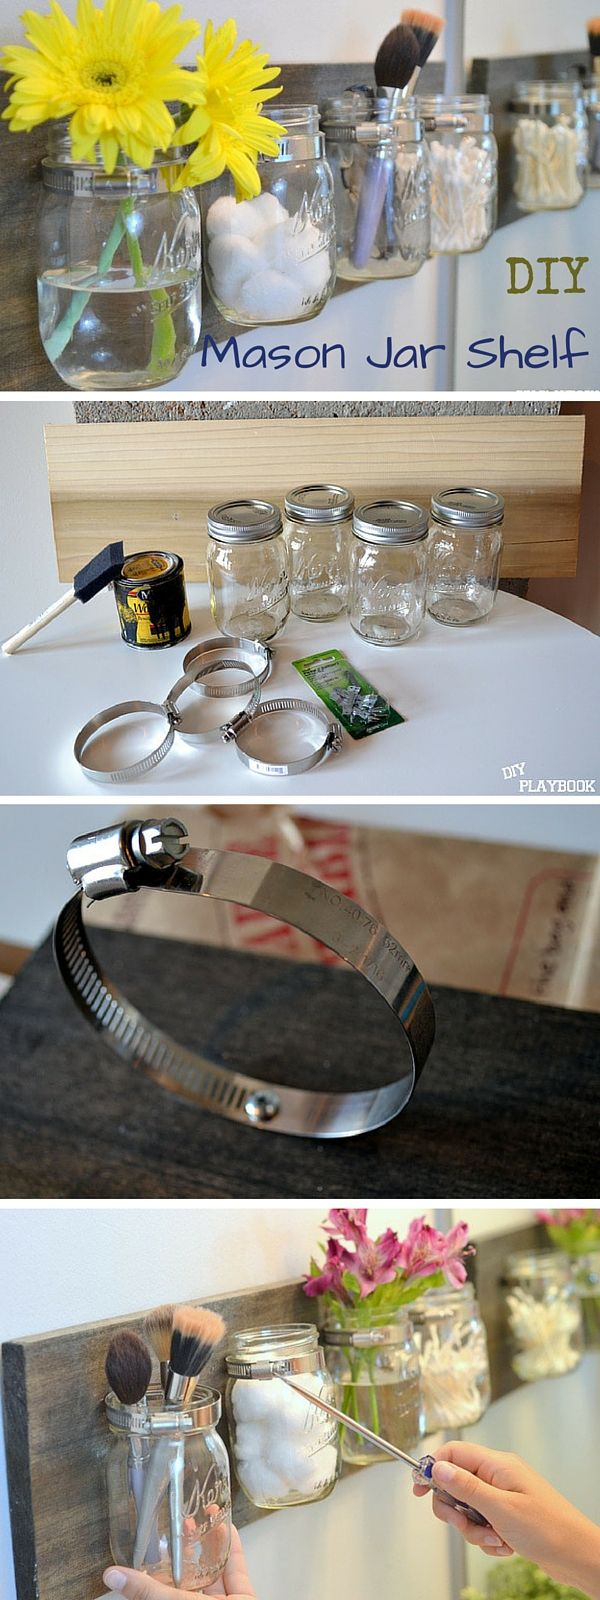 Check out the tutorial on how to make your own DIY Mason Jar shelves @istandarddesign